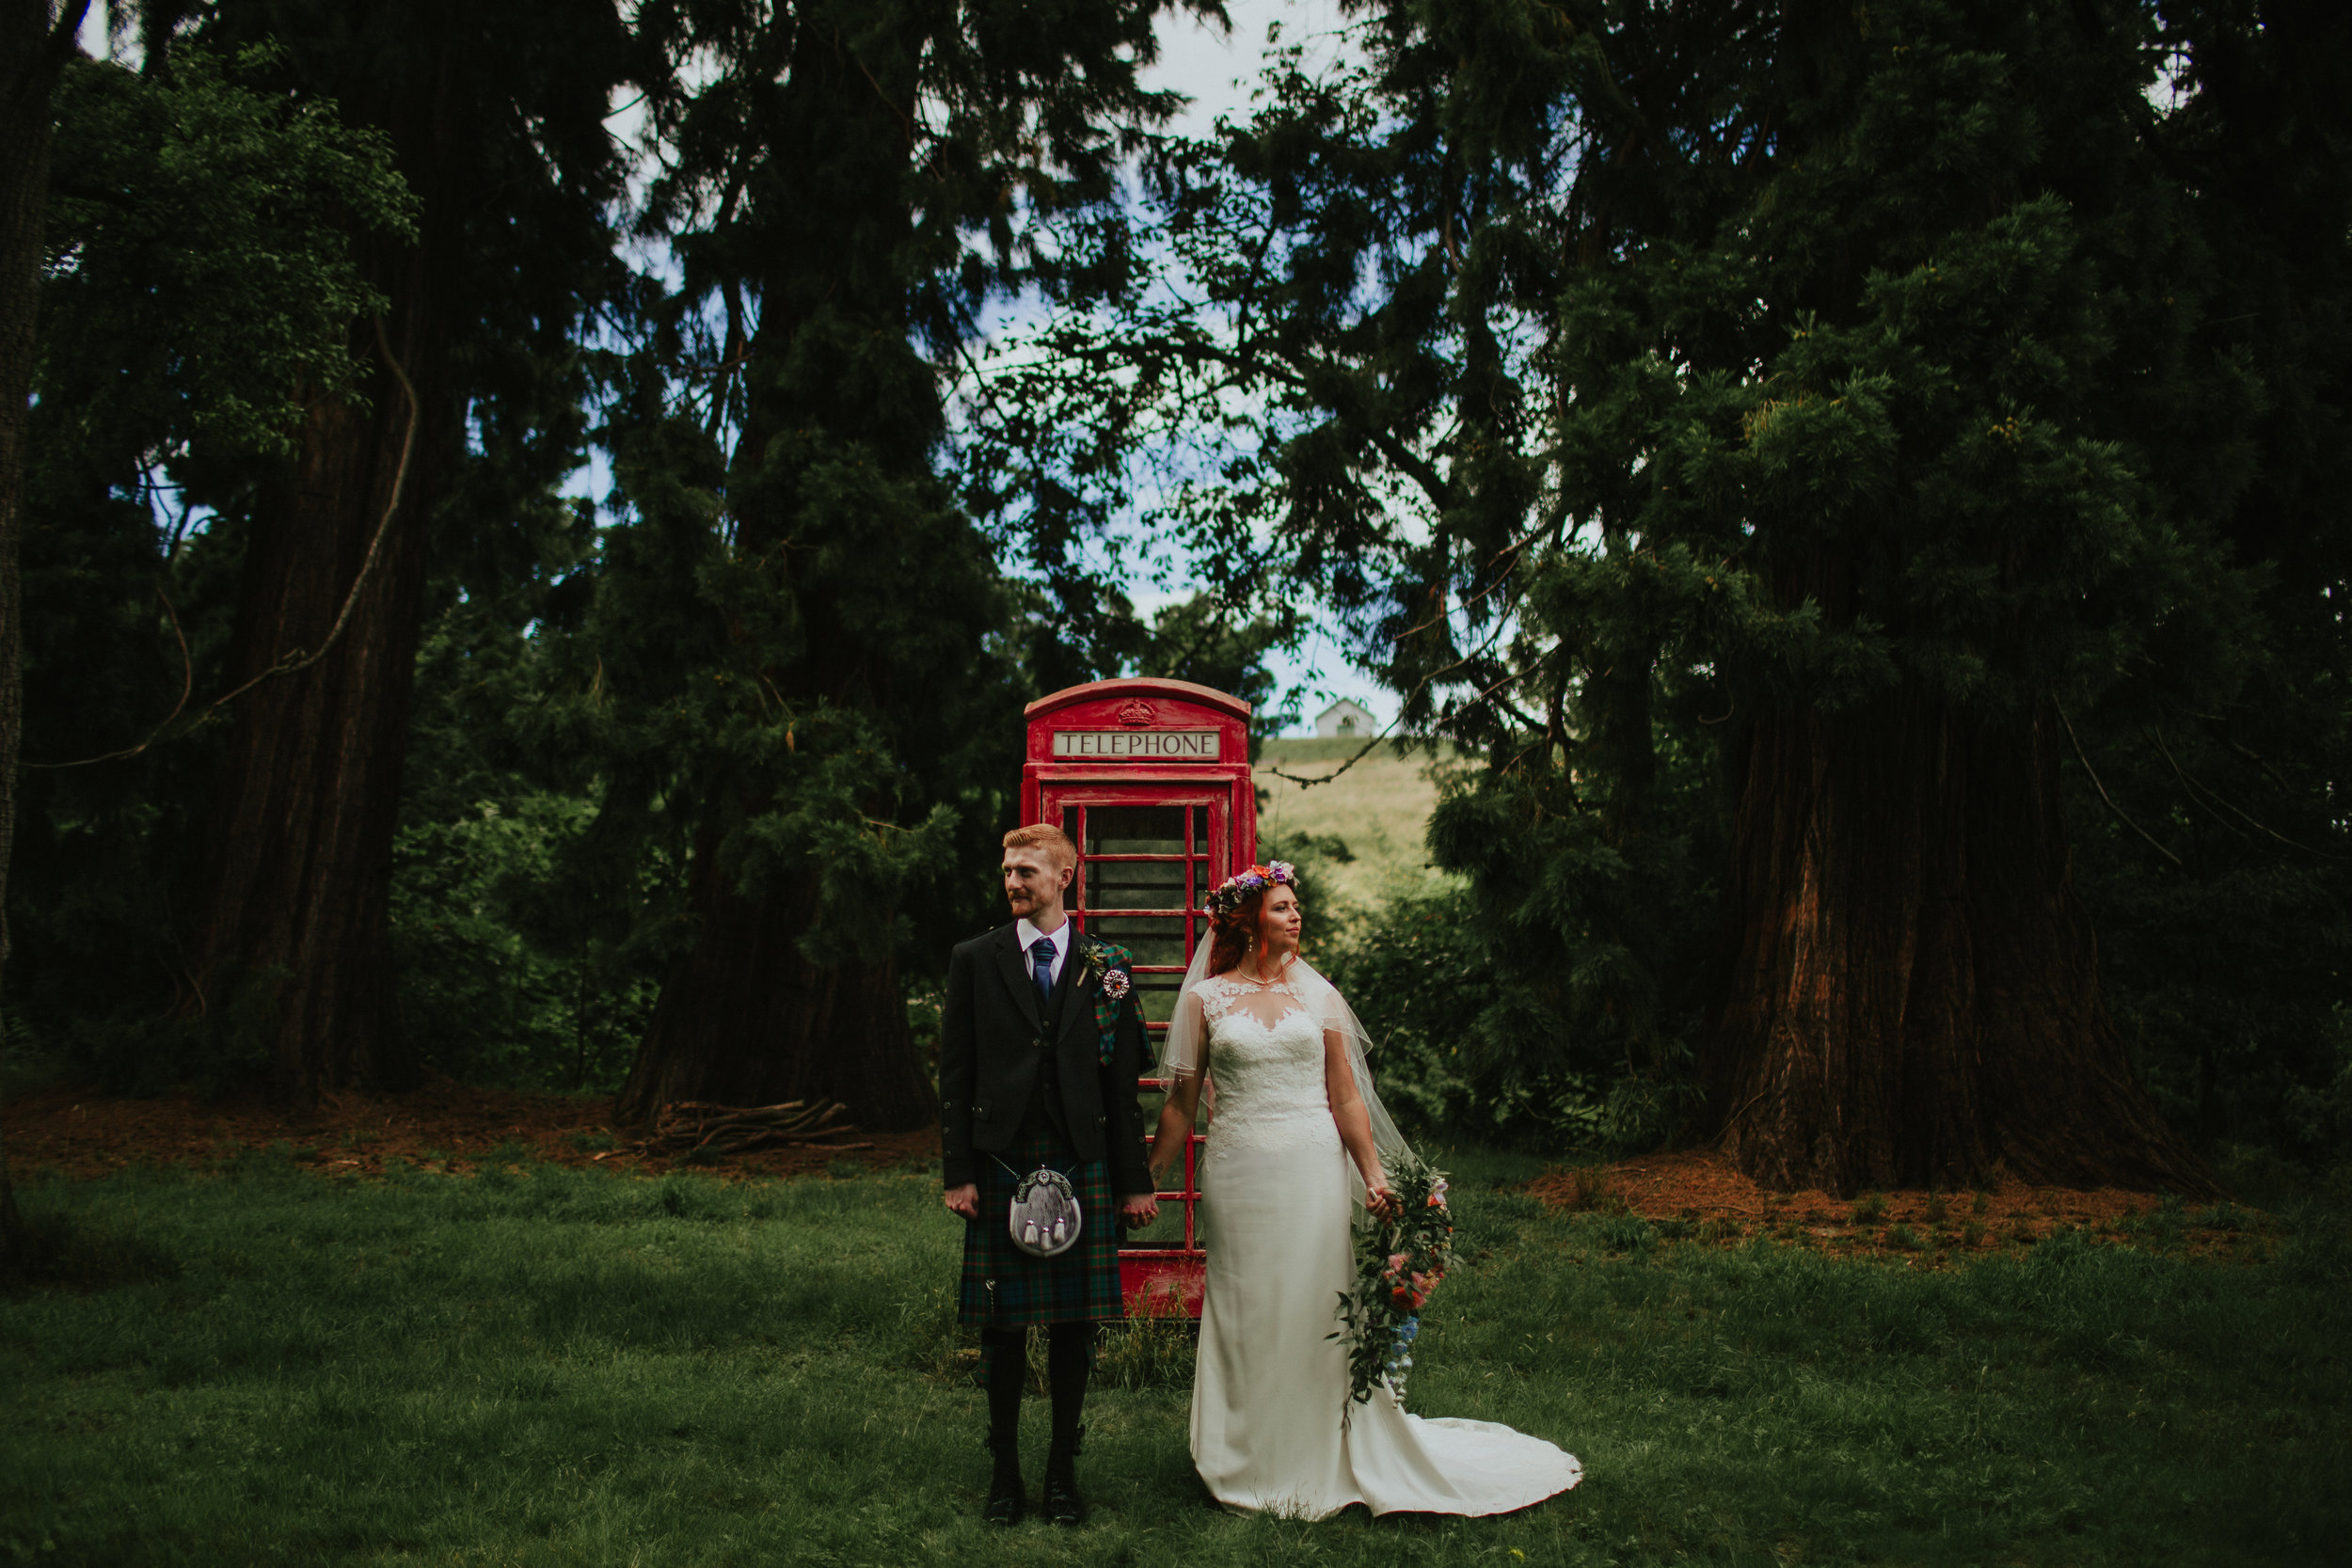 Reona + John - Fingask Castle | Aug 2018